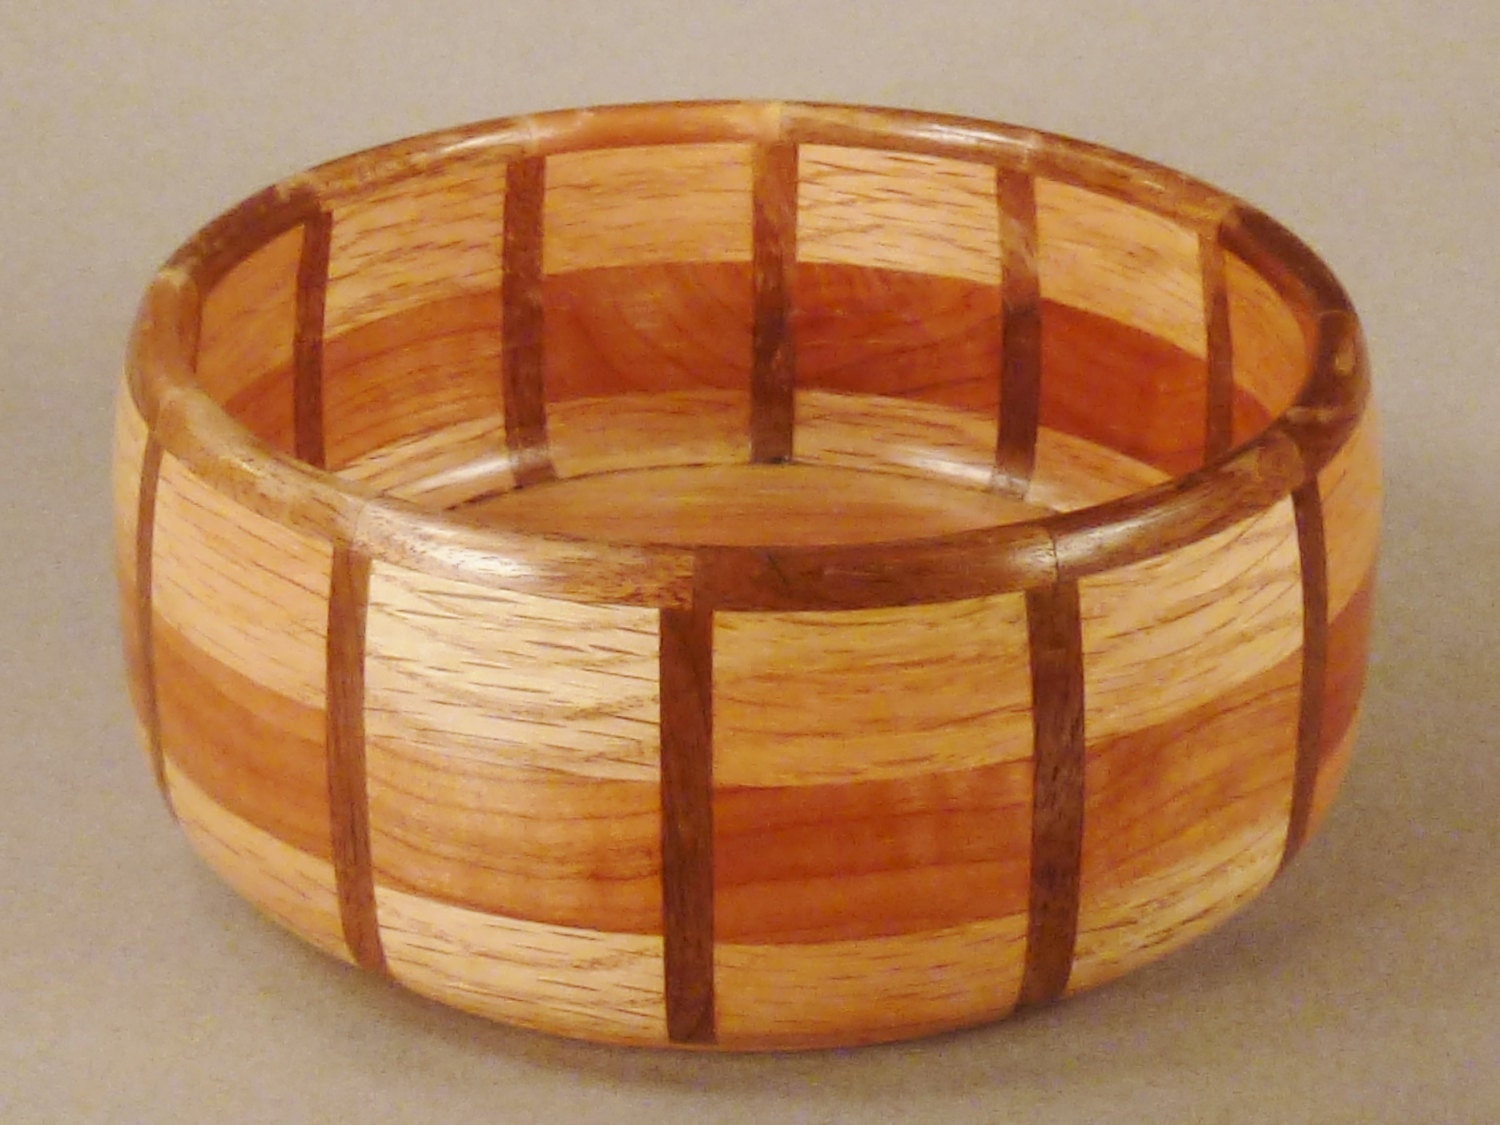 Inlaid Wooden Bowl One Of A Kind Oak Maple Teak Handcrafted